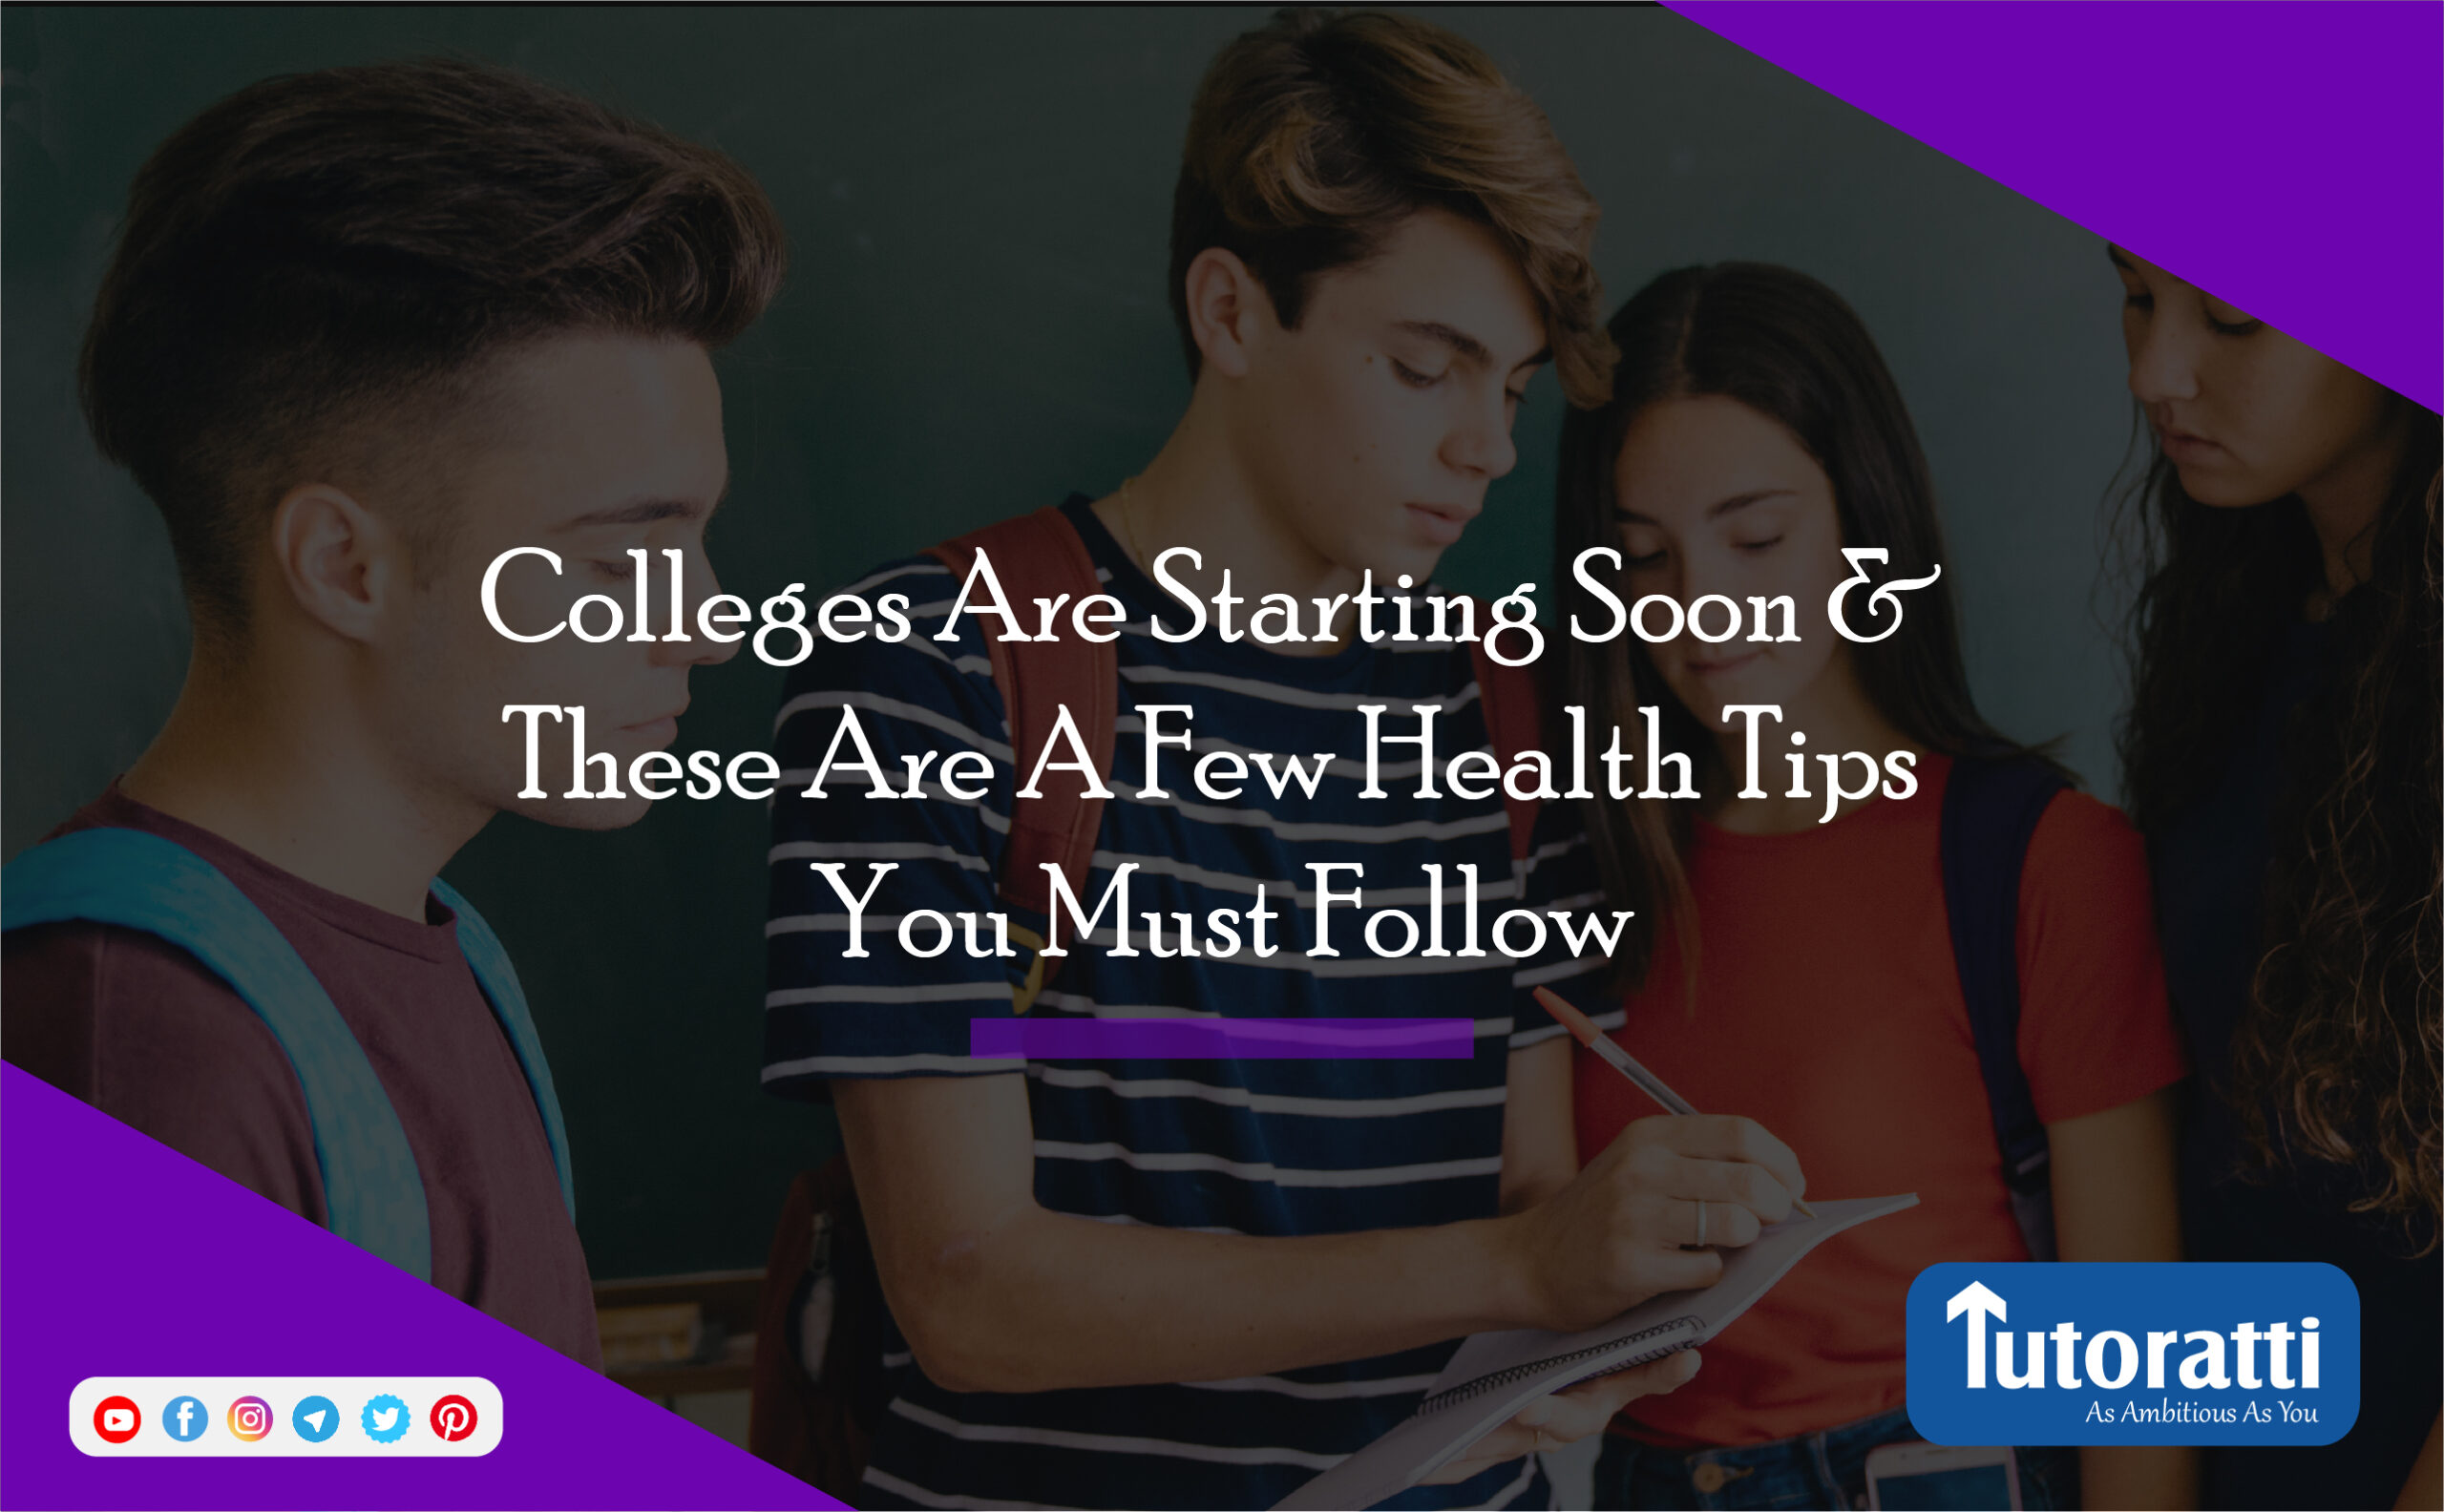 Colleges Are Starting Soon And These Are A Few Health Tips You Must Follow